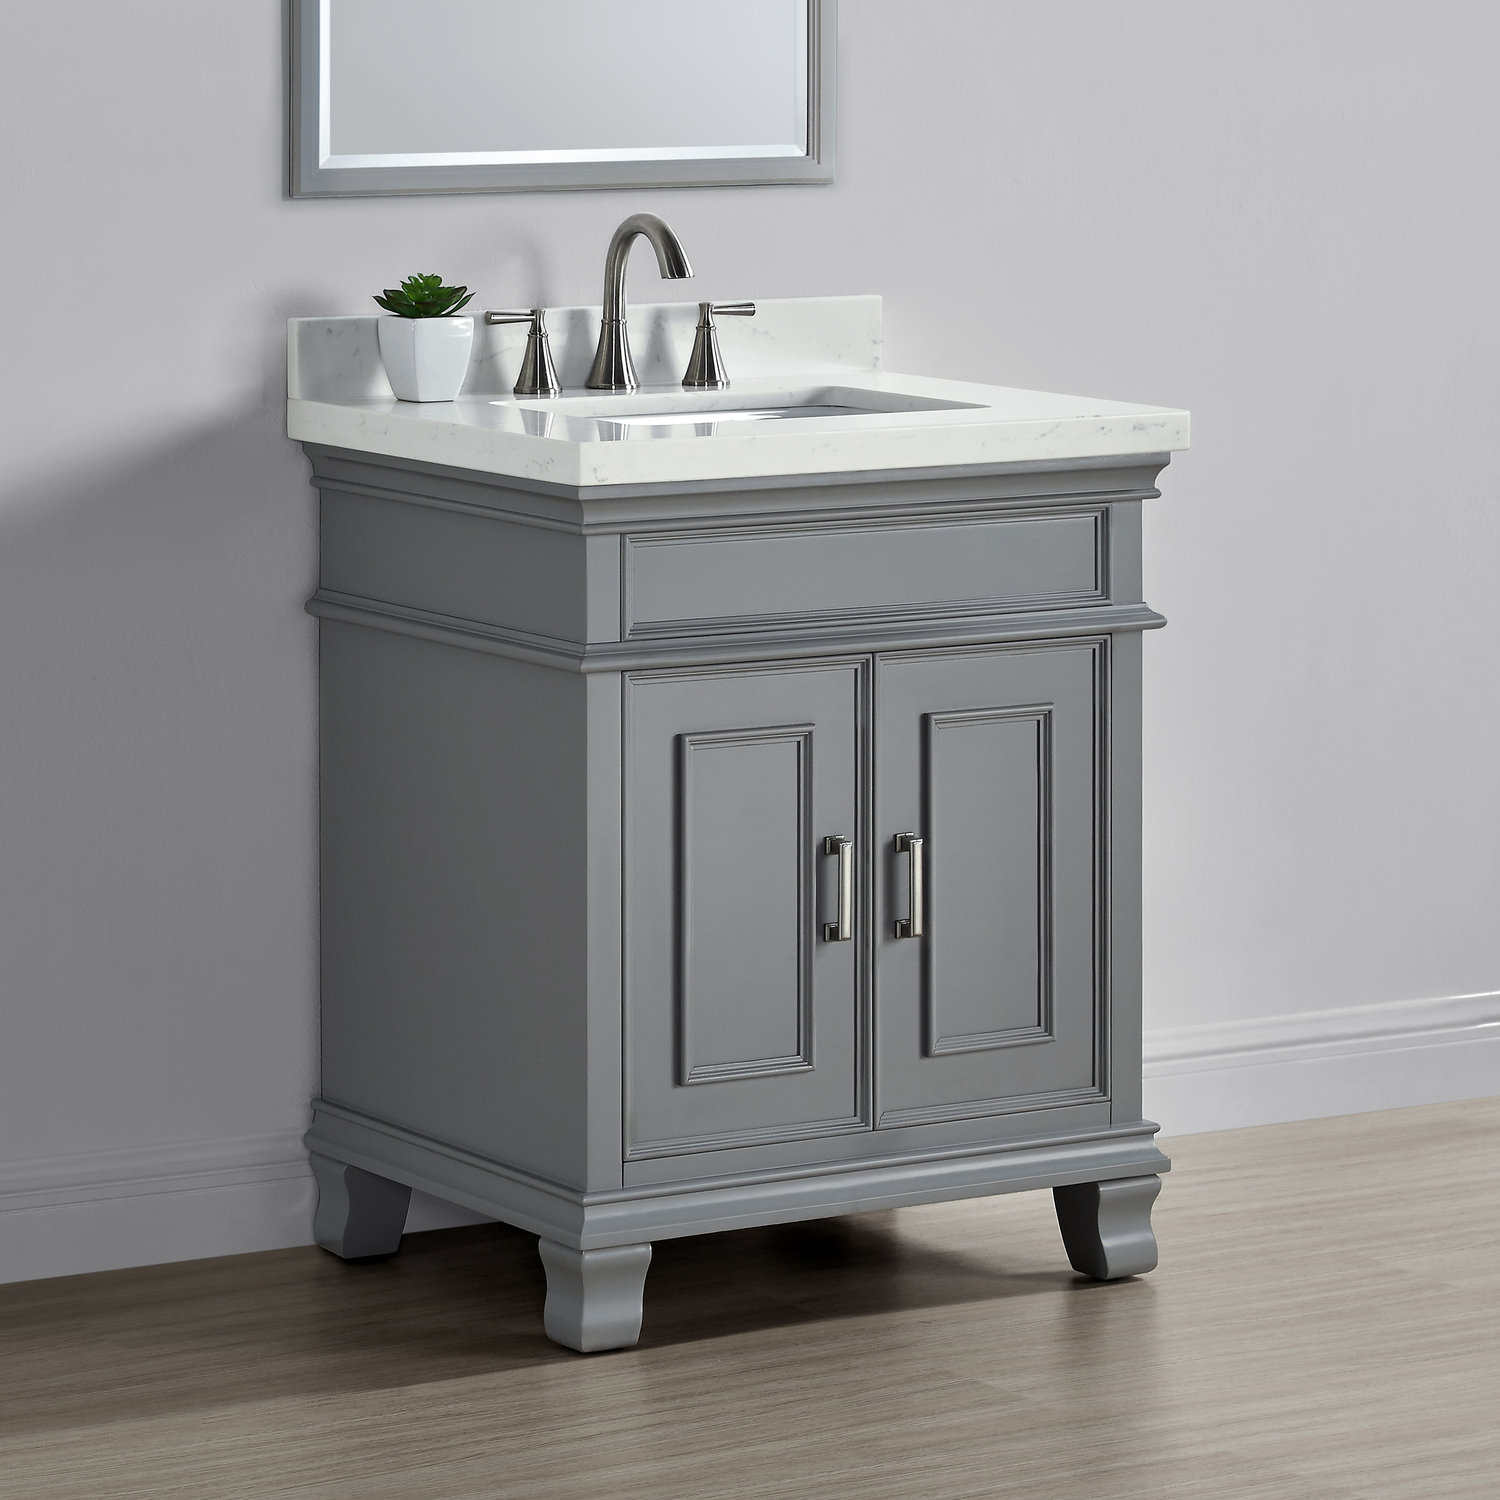 urban vanities products martin vanity gray ugr bathroom vanitiesdepot james double brittany com